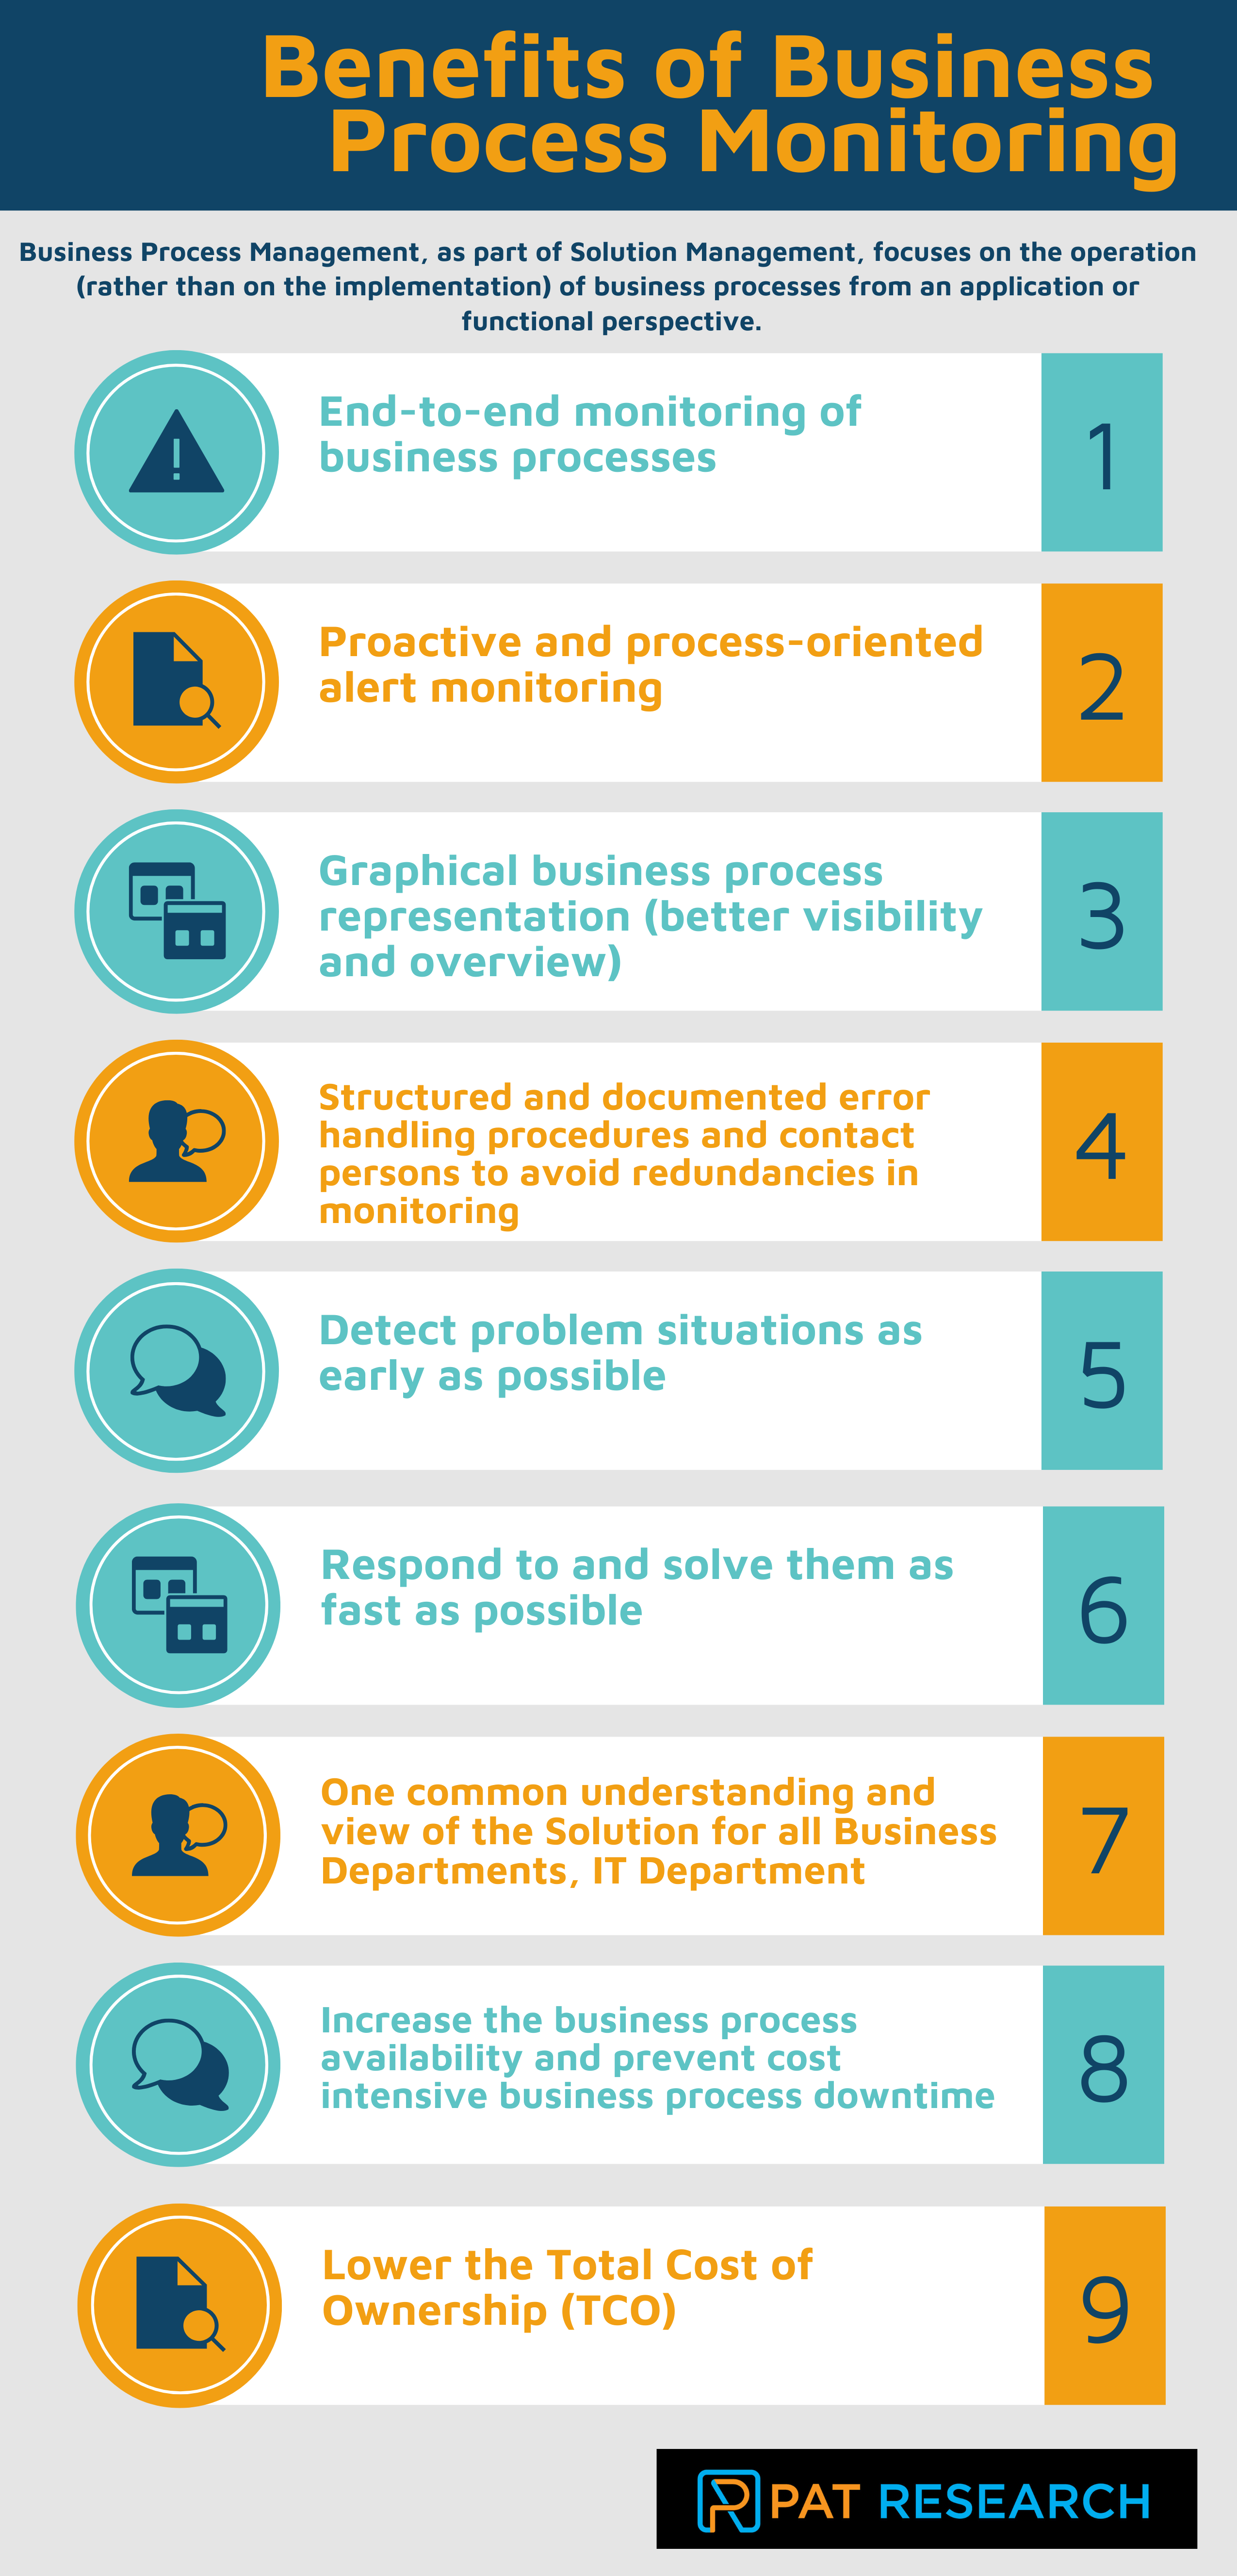 What are the benefits of Business Process Monitoring